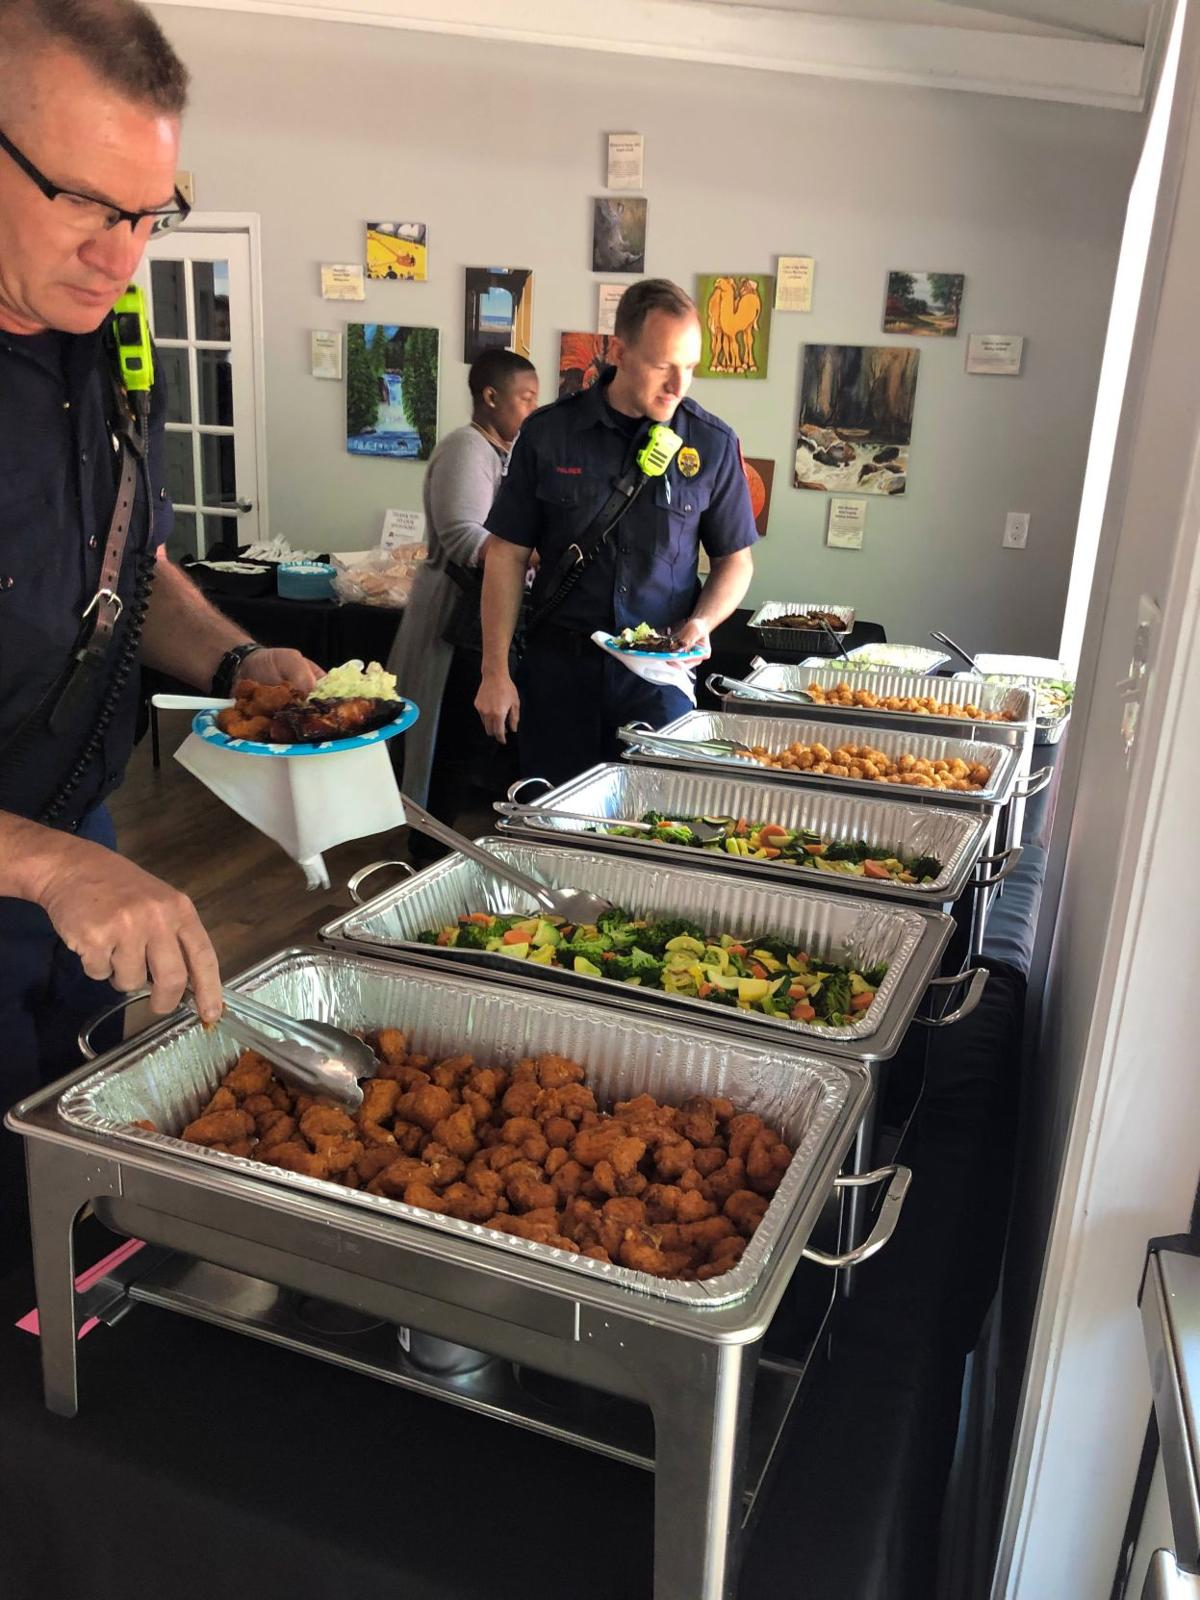 050719_MDJ_Dateline_First_Responder_Lunch2.jpg